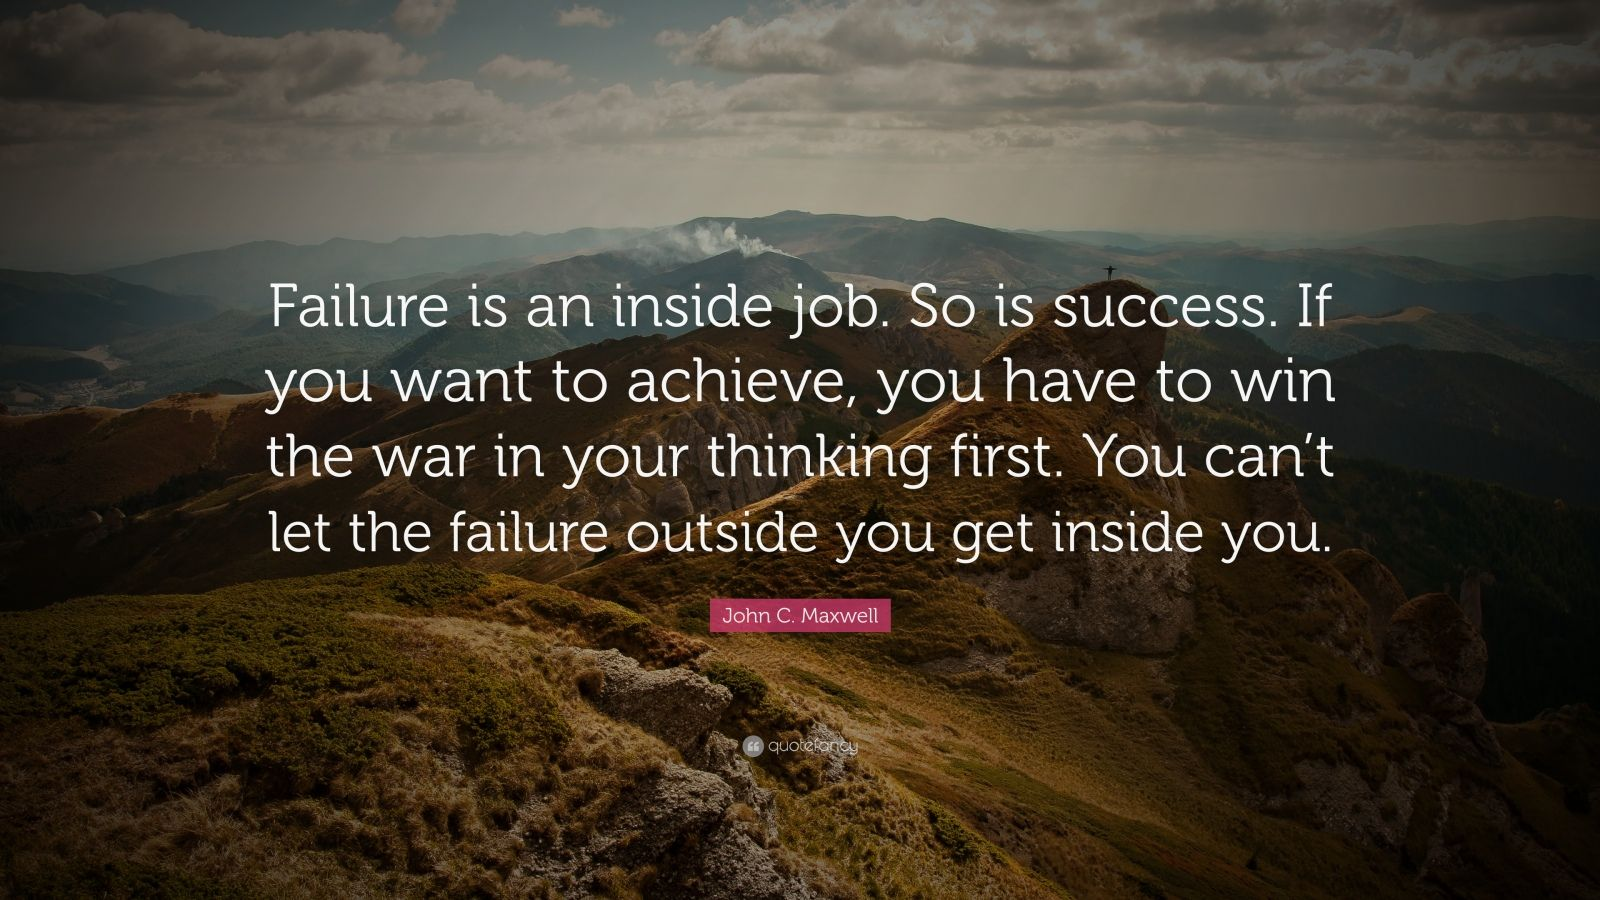 "John C. Maxwell Quote: ""Failure is an inside job. So is success. If you want to achieve, you have to win the war in your thinking first. You can't let the failure outside you get inside you."""